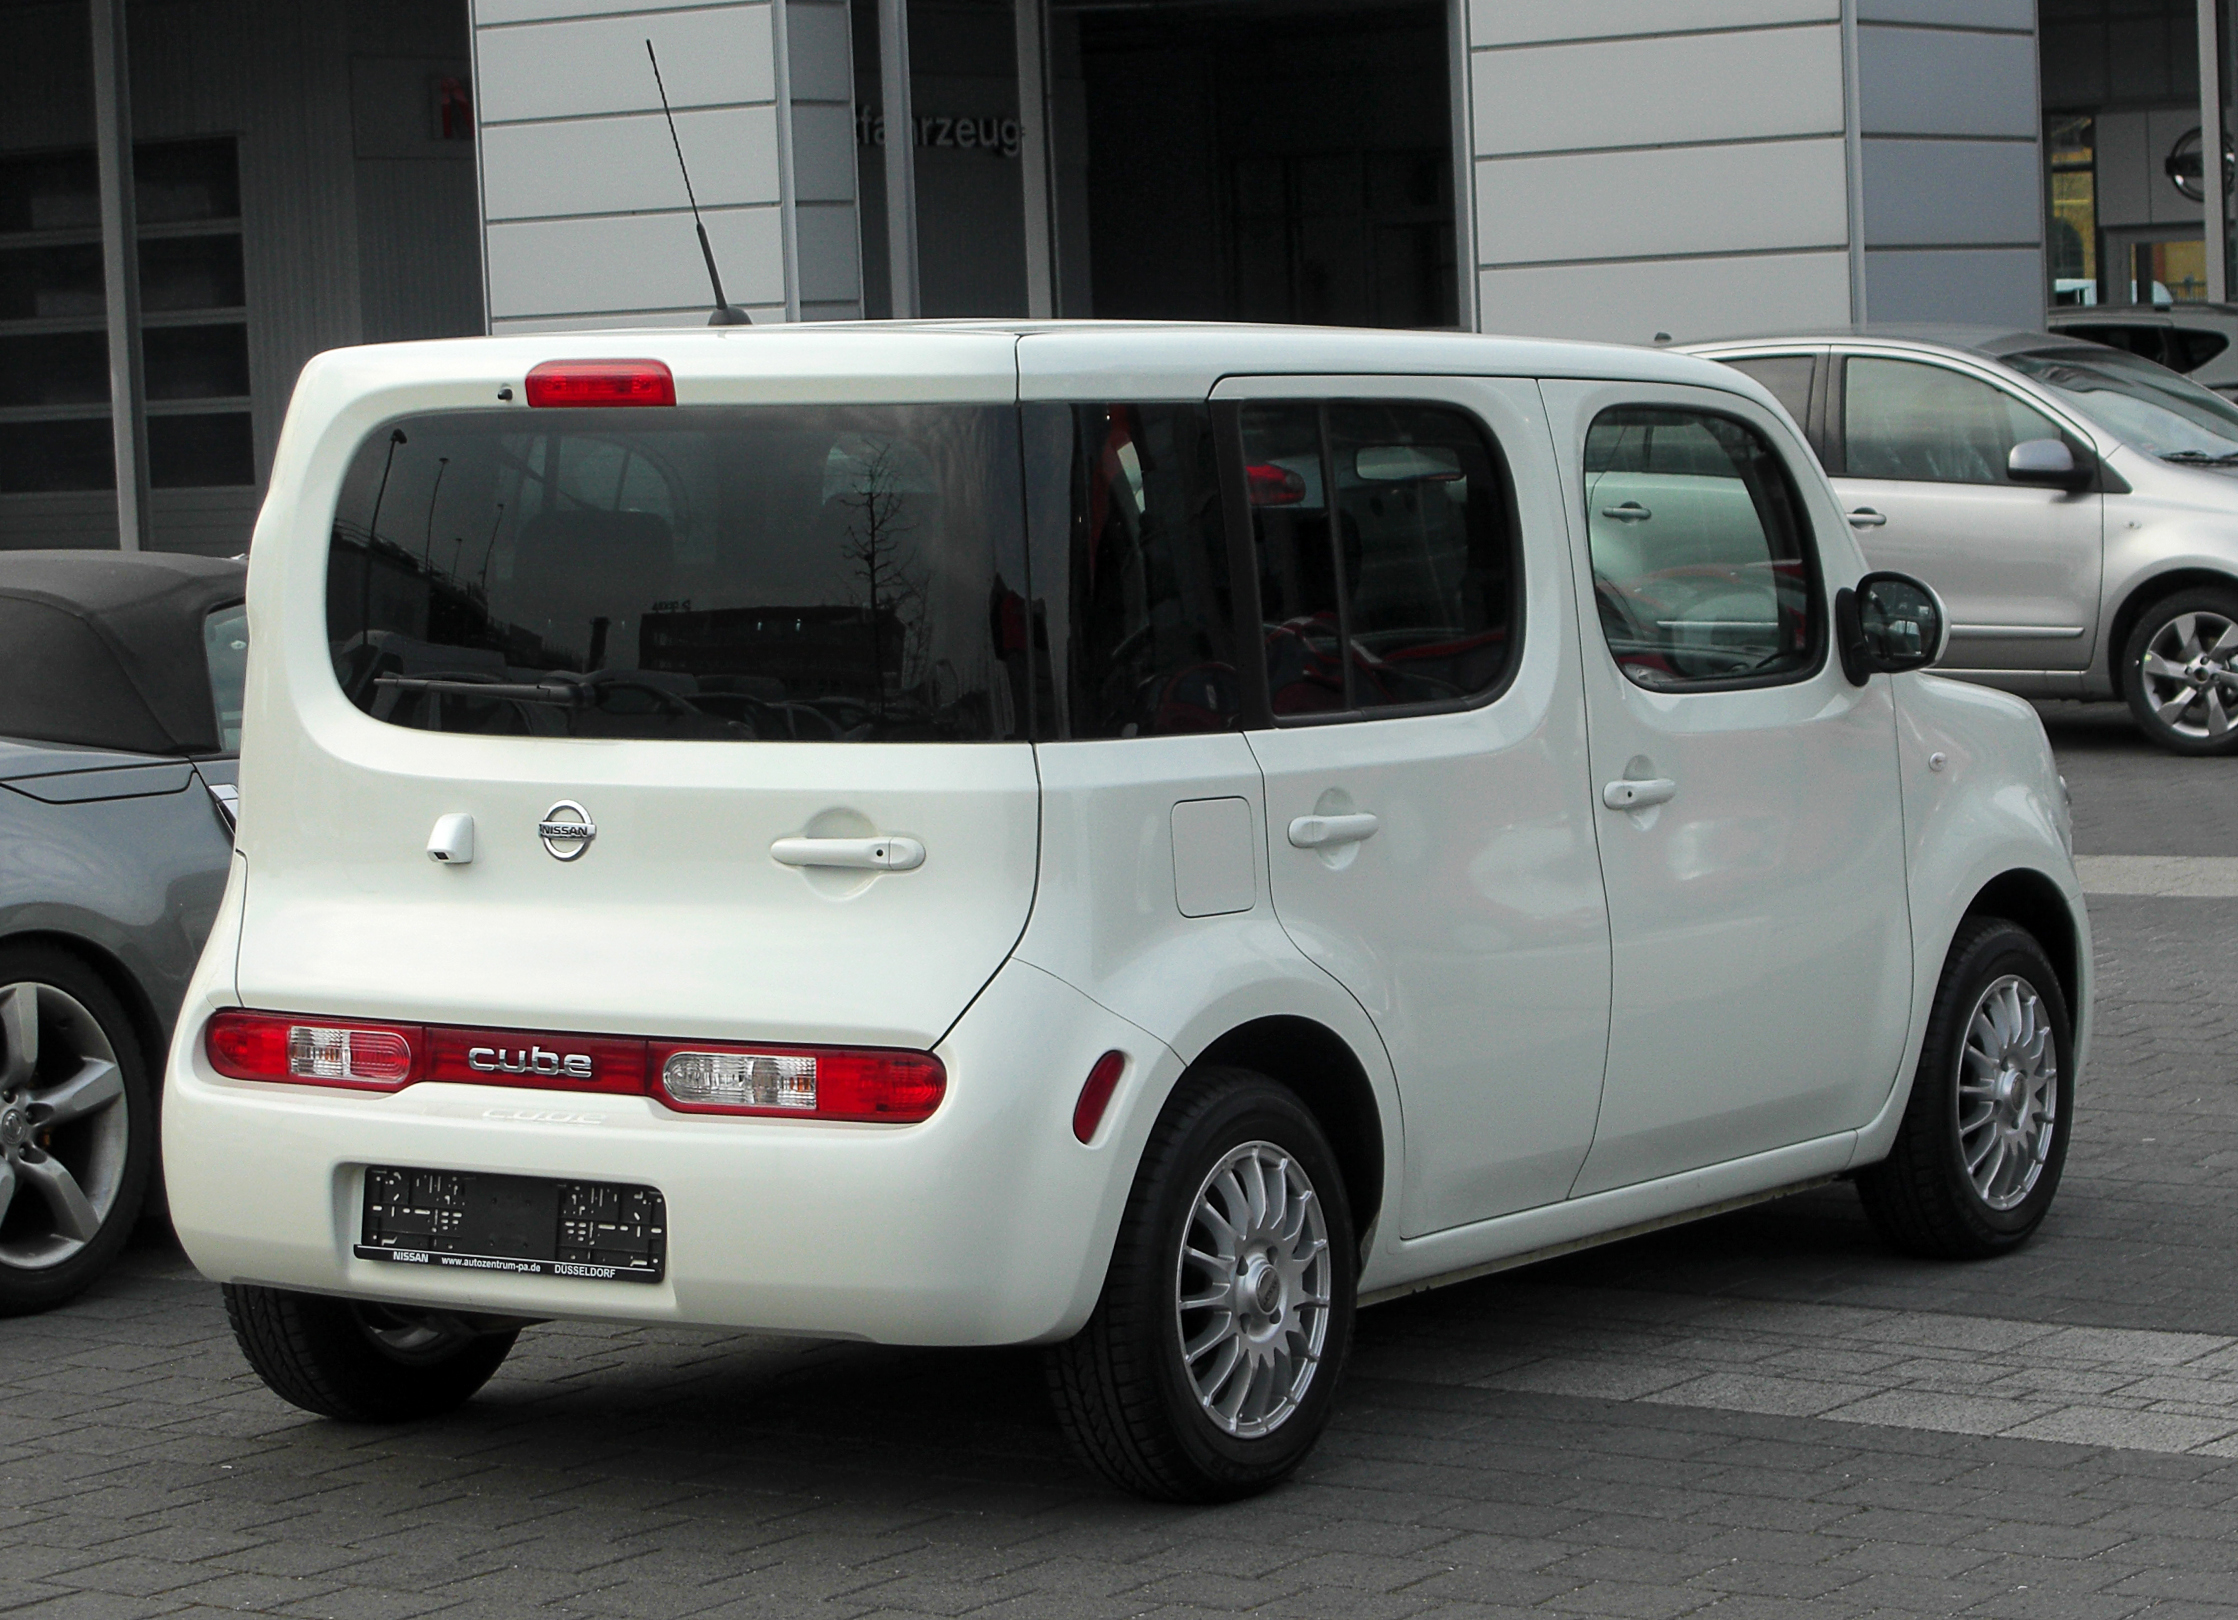 Nissan Cube Images